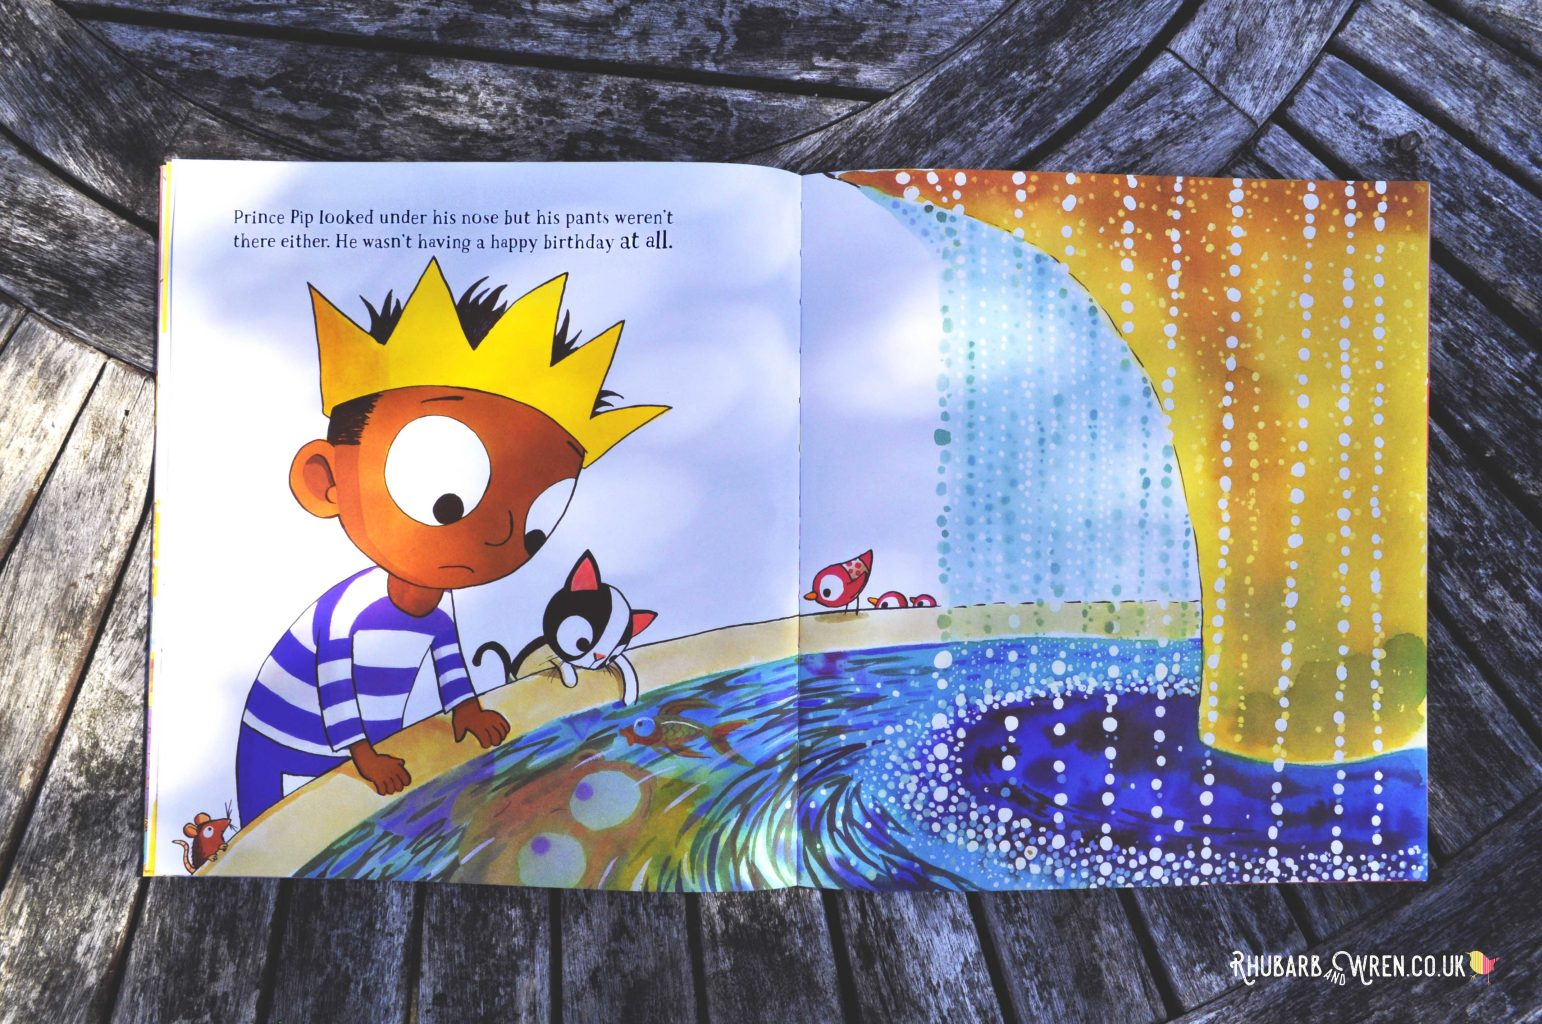 The Prince of Pants picture book